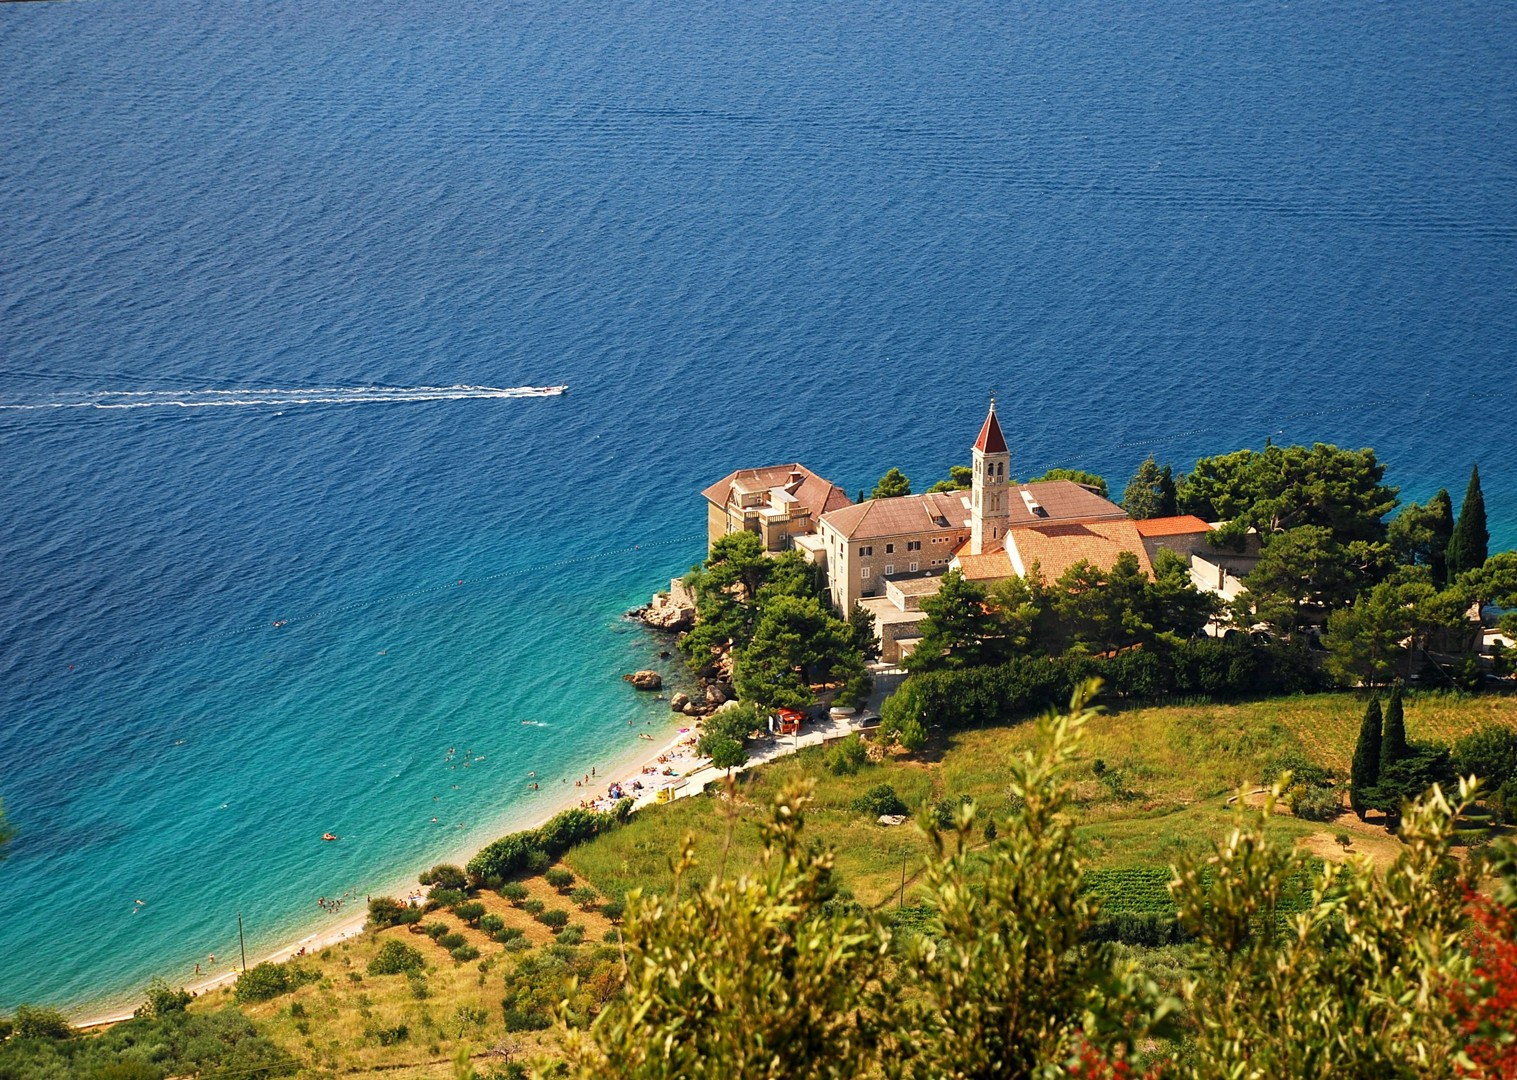 explore-croatia-bike-and-boat-holiday.jpg - Croatia - Southern Dalmatia - Bike and Boat Holiday - Leisure Cycling